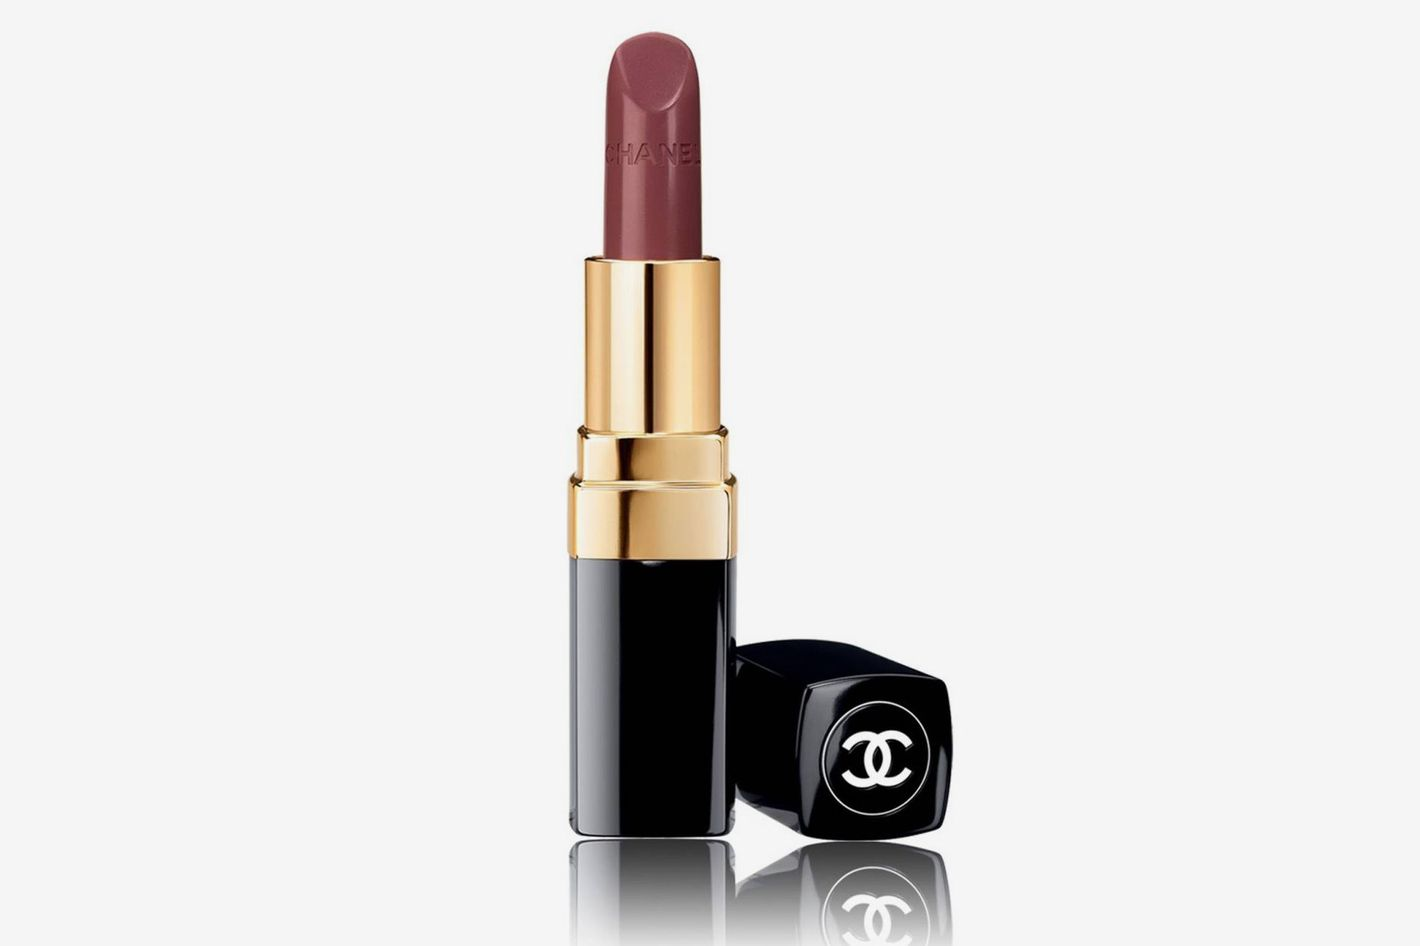 Chanel Rouge Coco Ultra Hydrating Lip Color